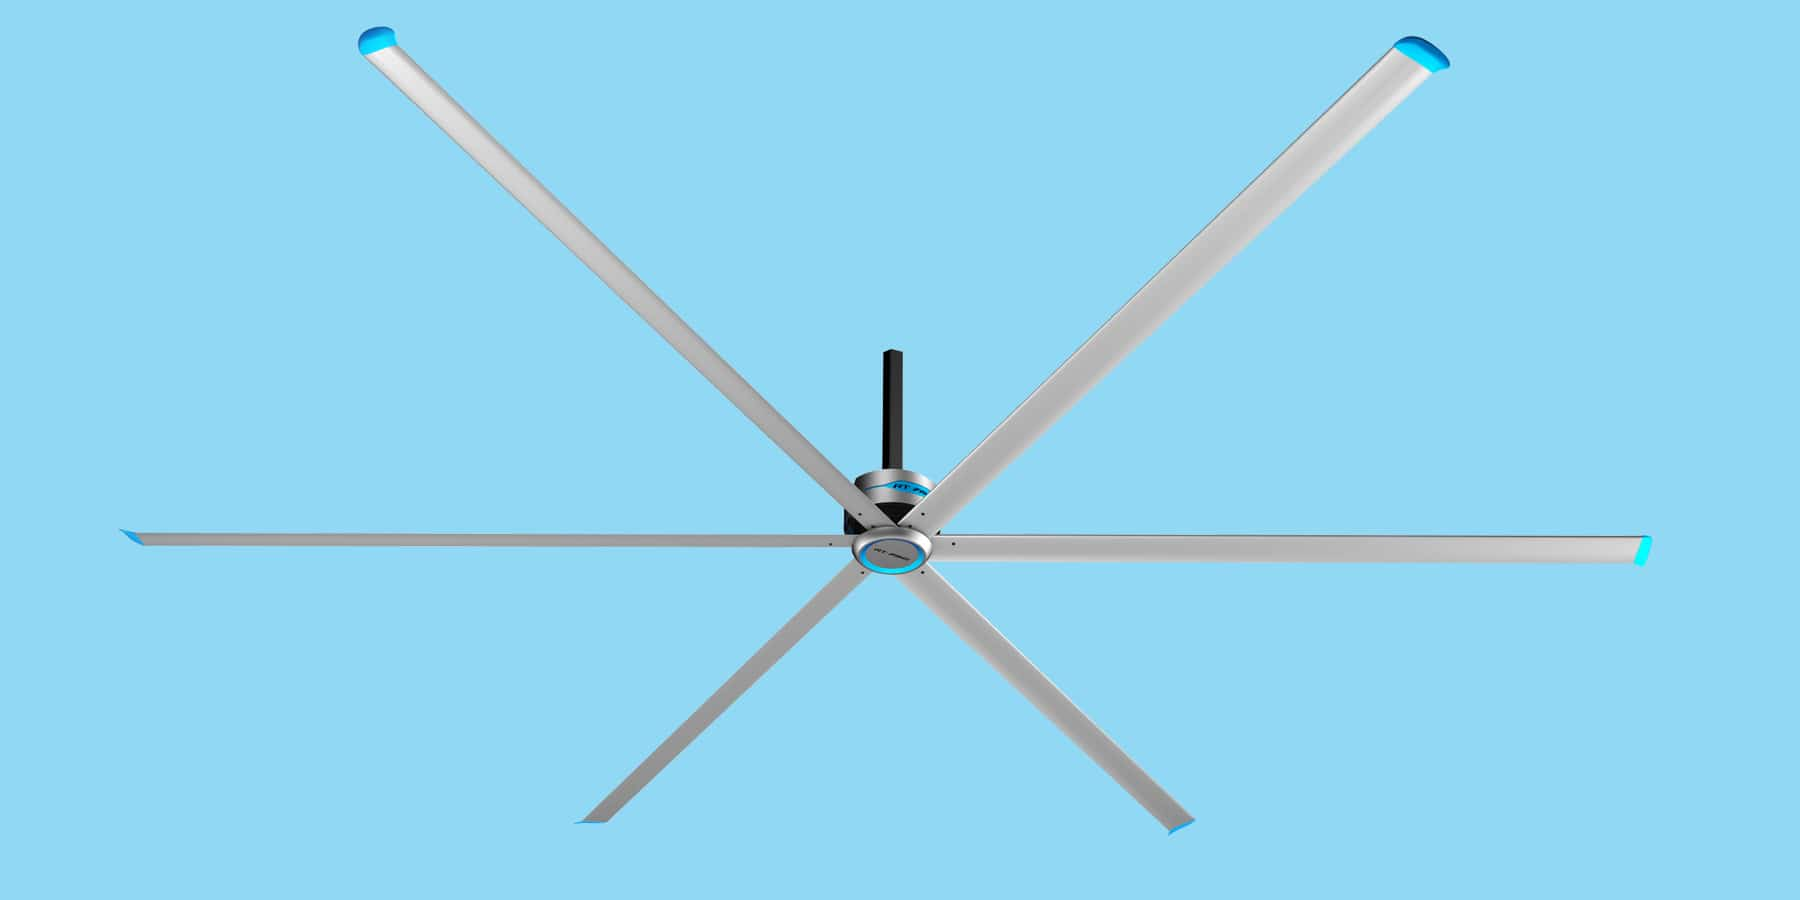 pmsm fan used for large spaces 05 min